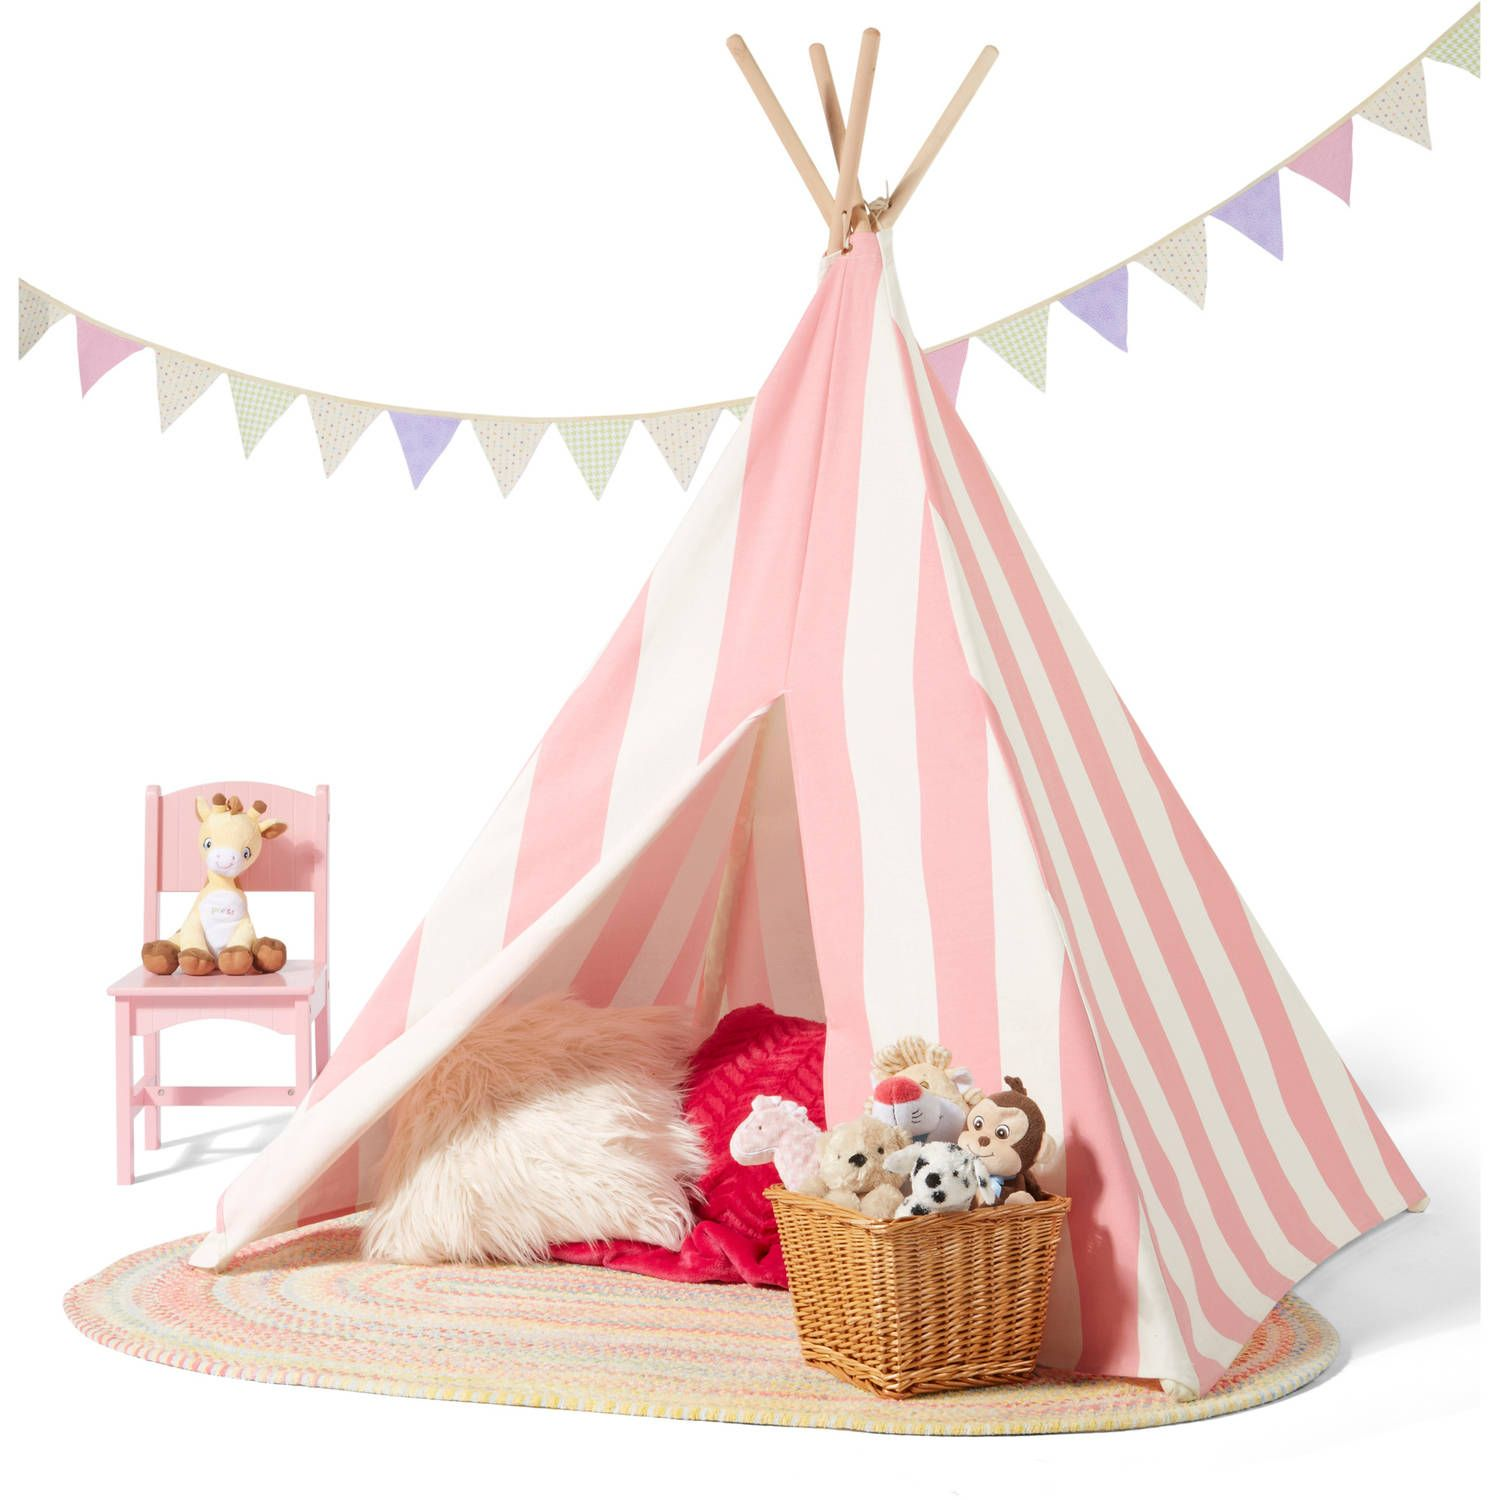 Childrenu0027s Teepee Tent Pink/White Stripes - Walmart.com  sc 1 st  Pinterest & Childrenu0027s Teepee Tent Pink/White Stripes - Walmart.com | Mia ...